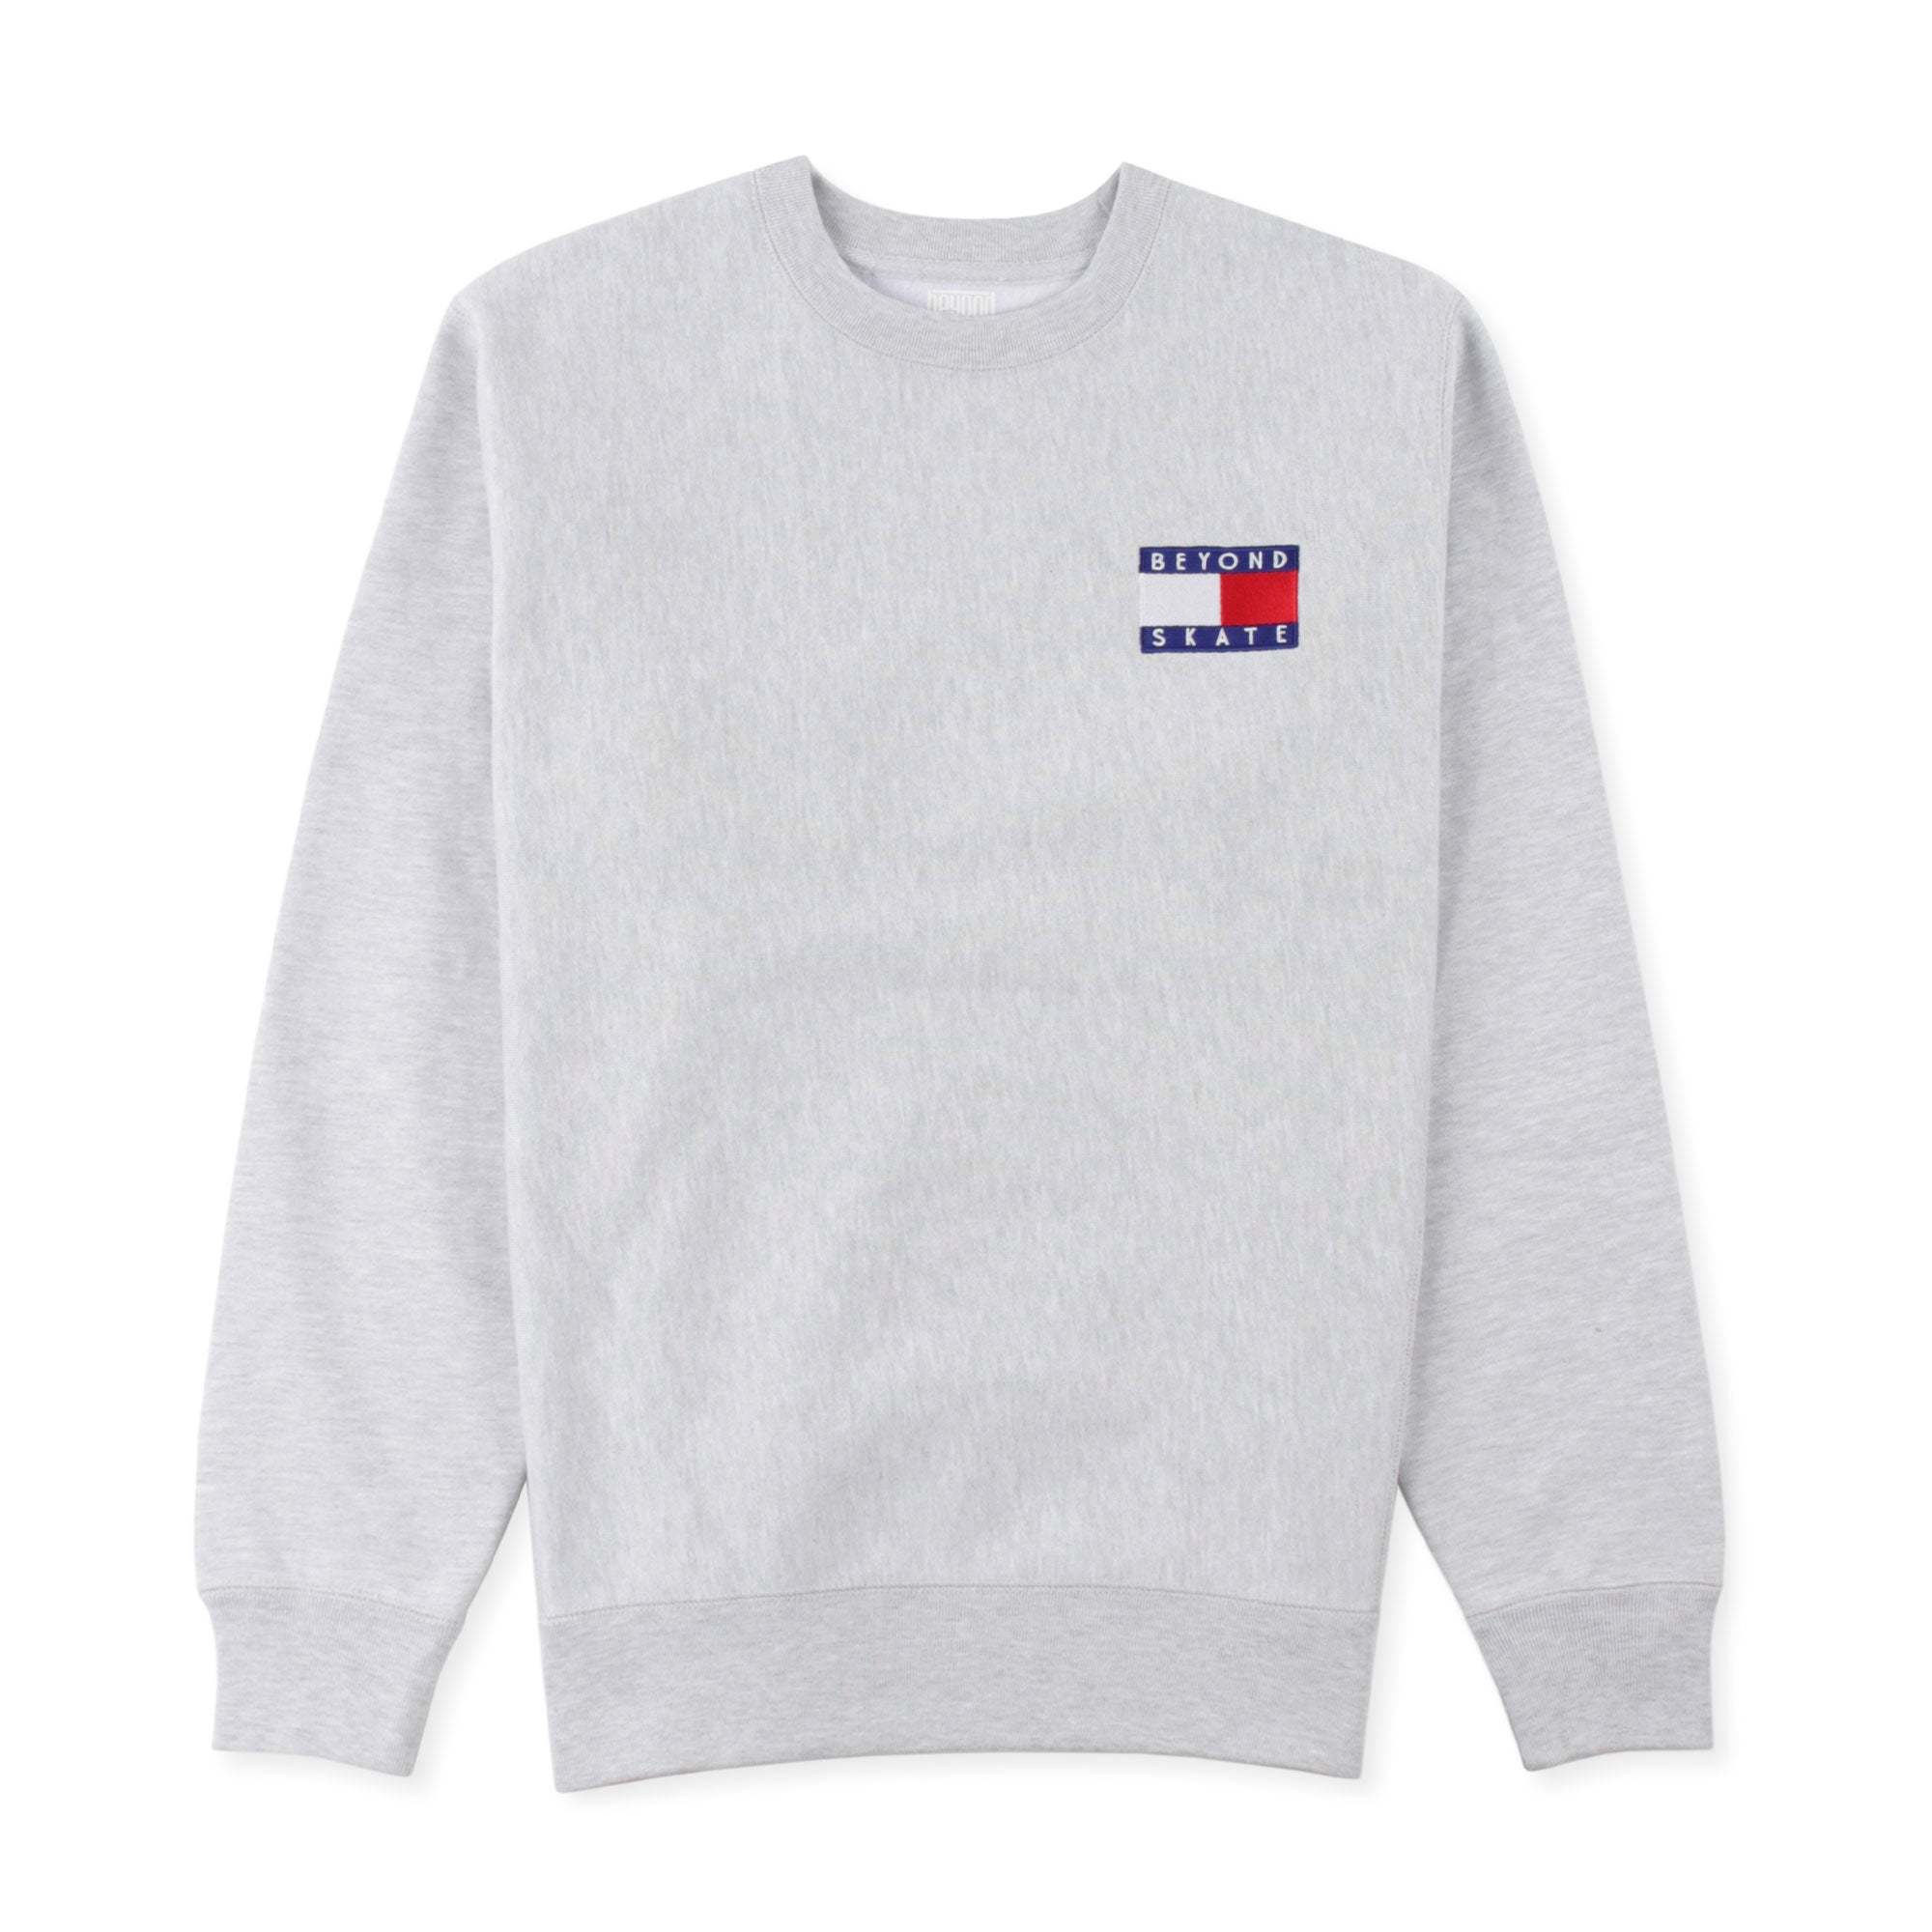 Beyond Tommy Crewneck Product Photo #1